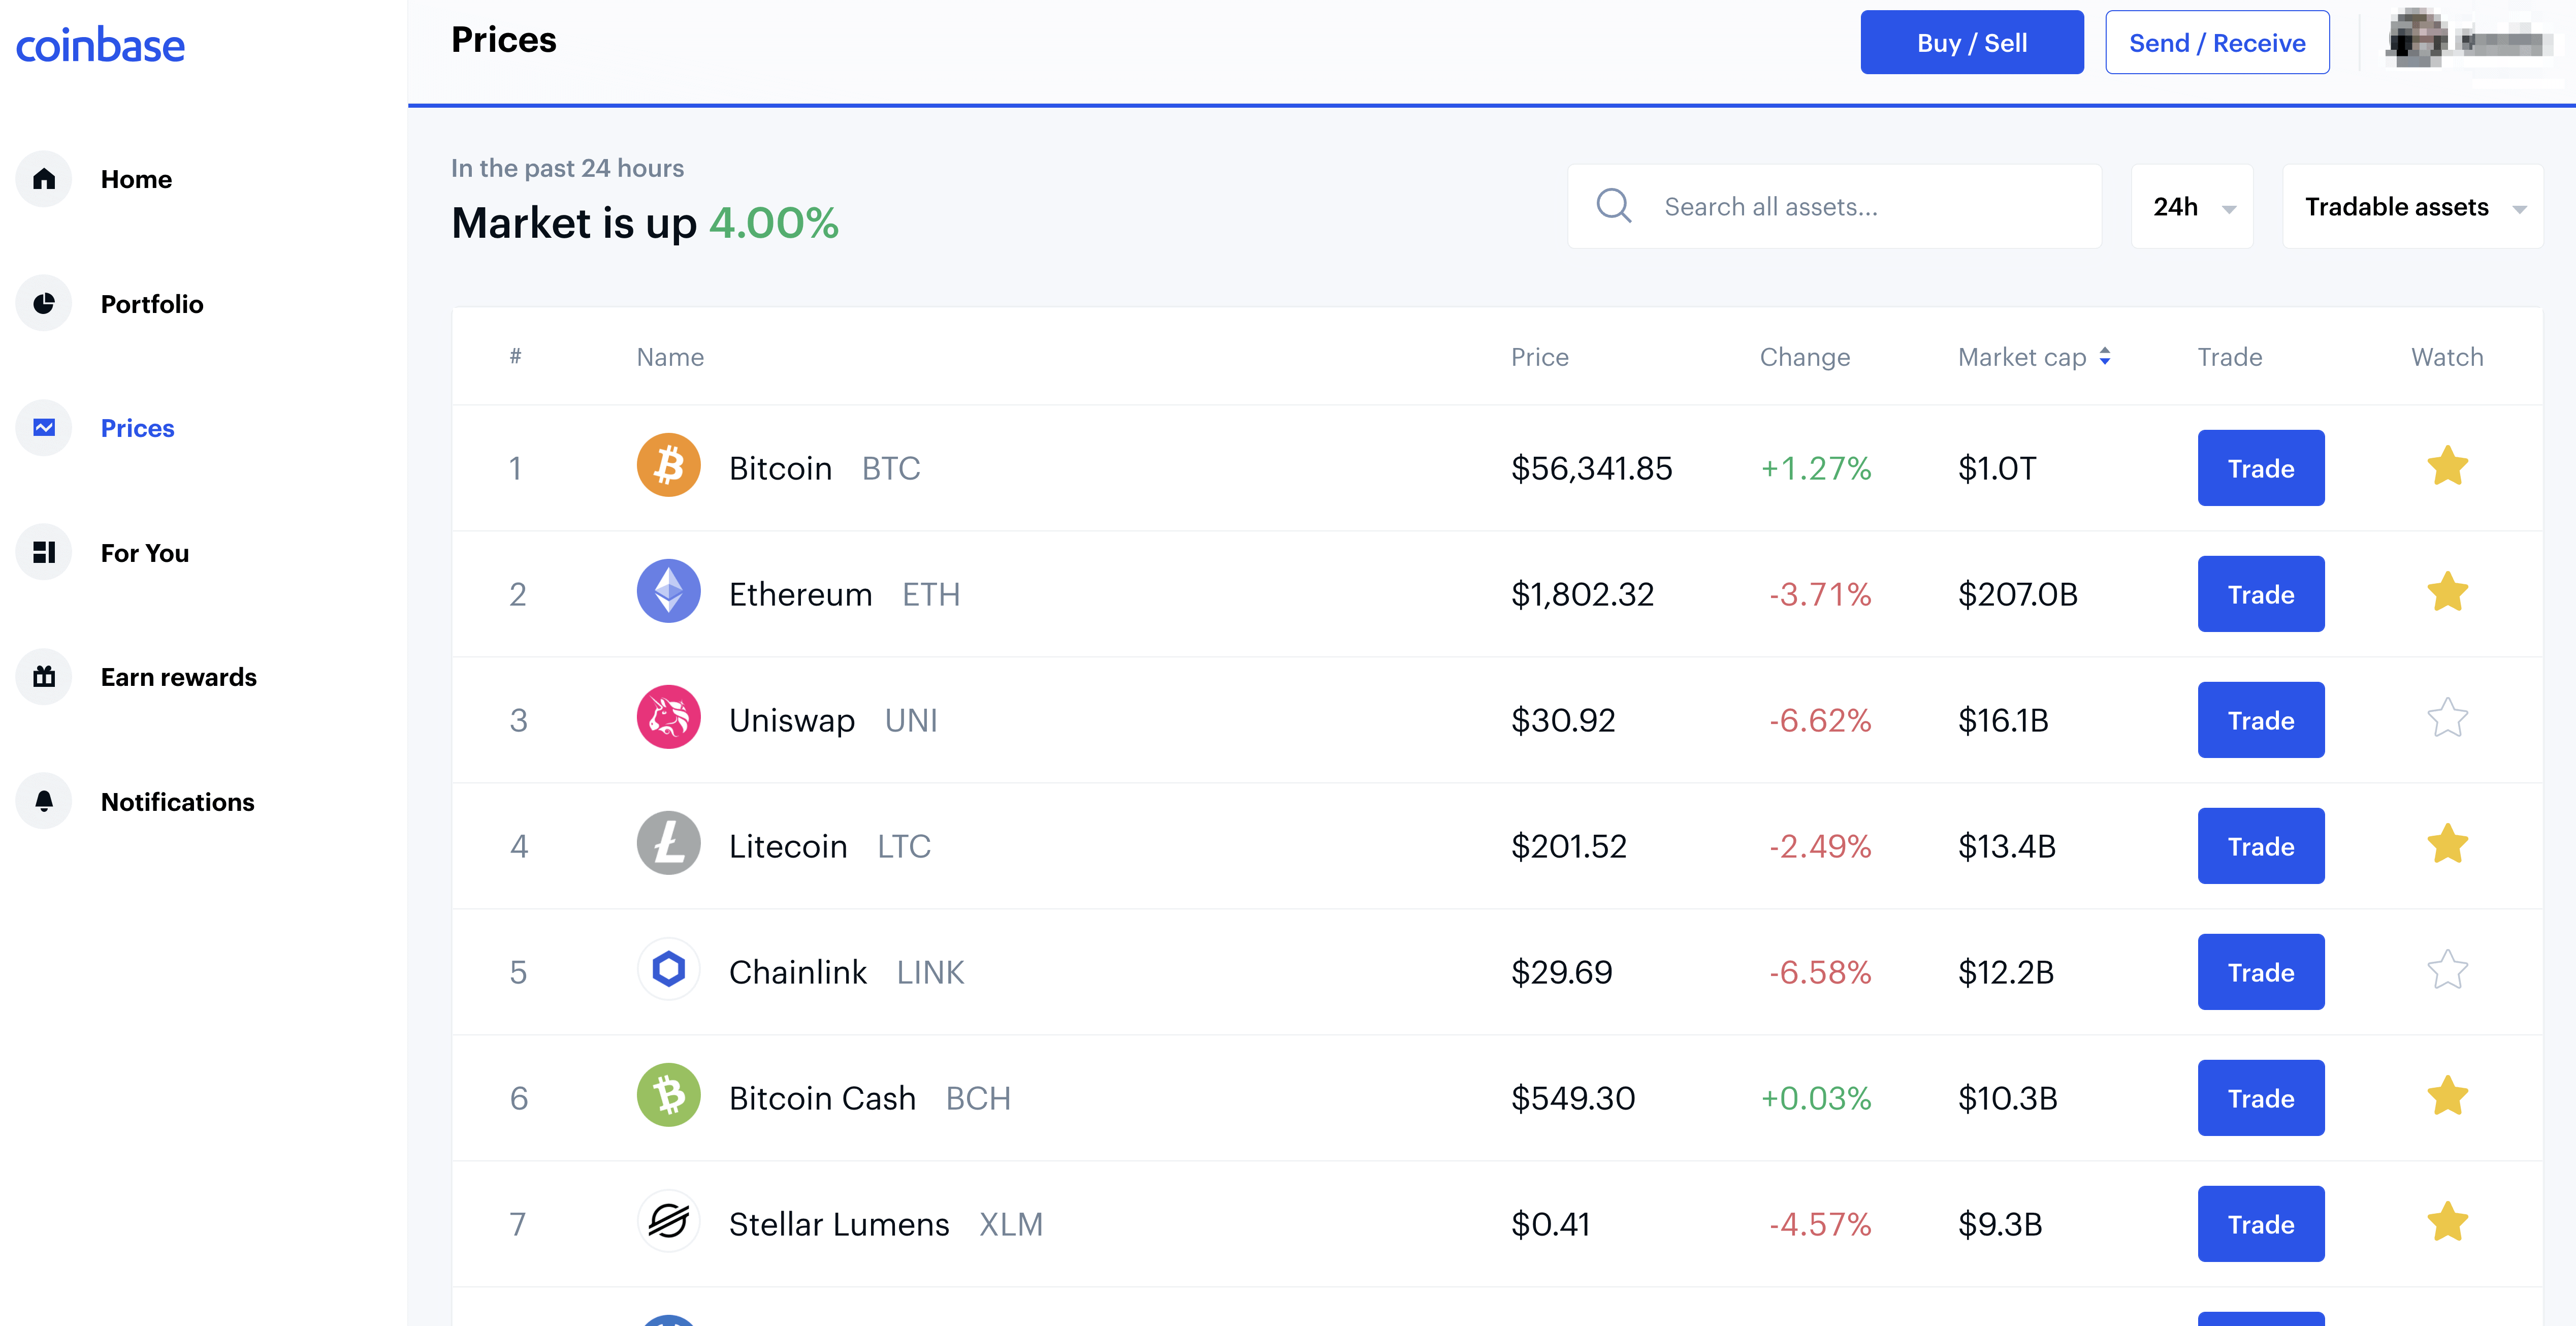 Coinbase exchange's search and watchlist